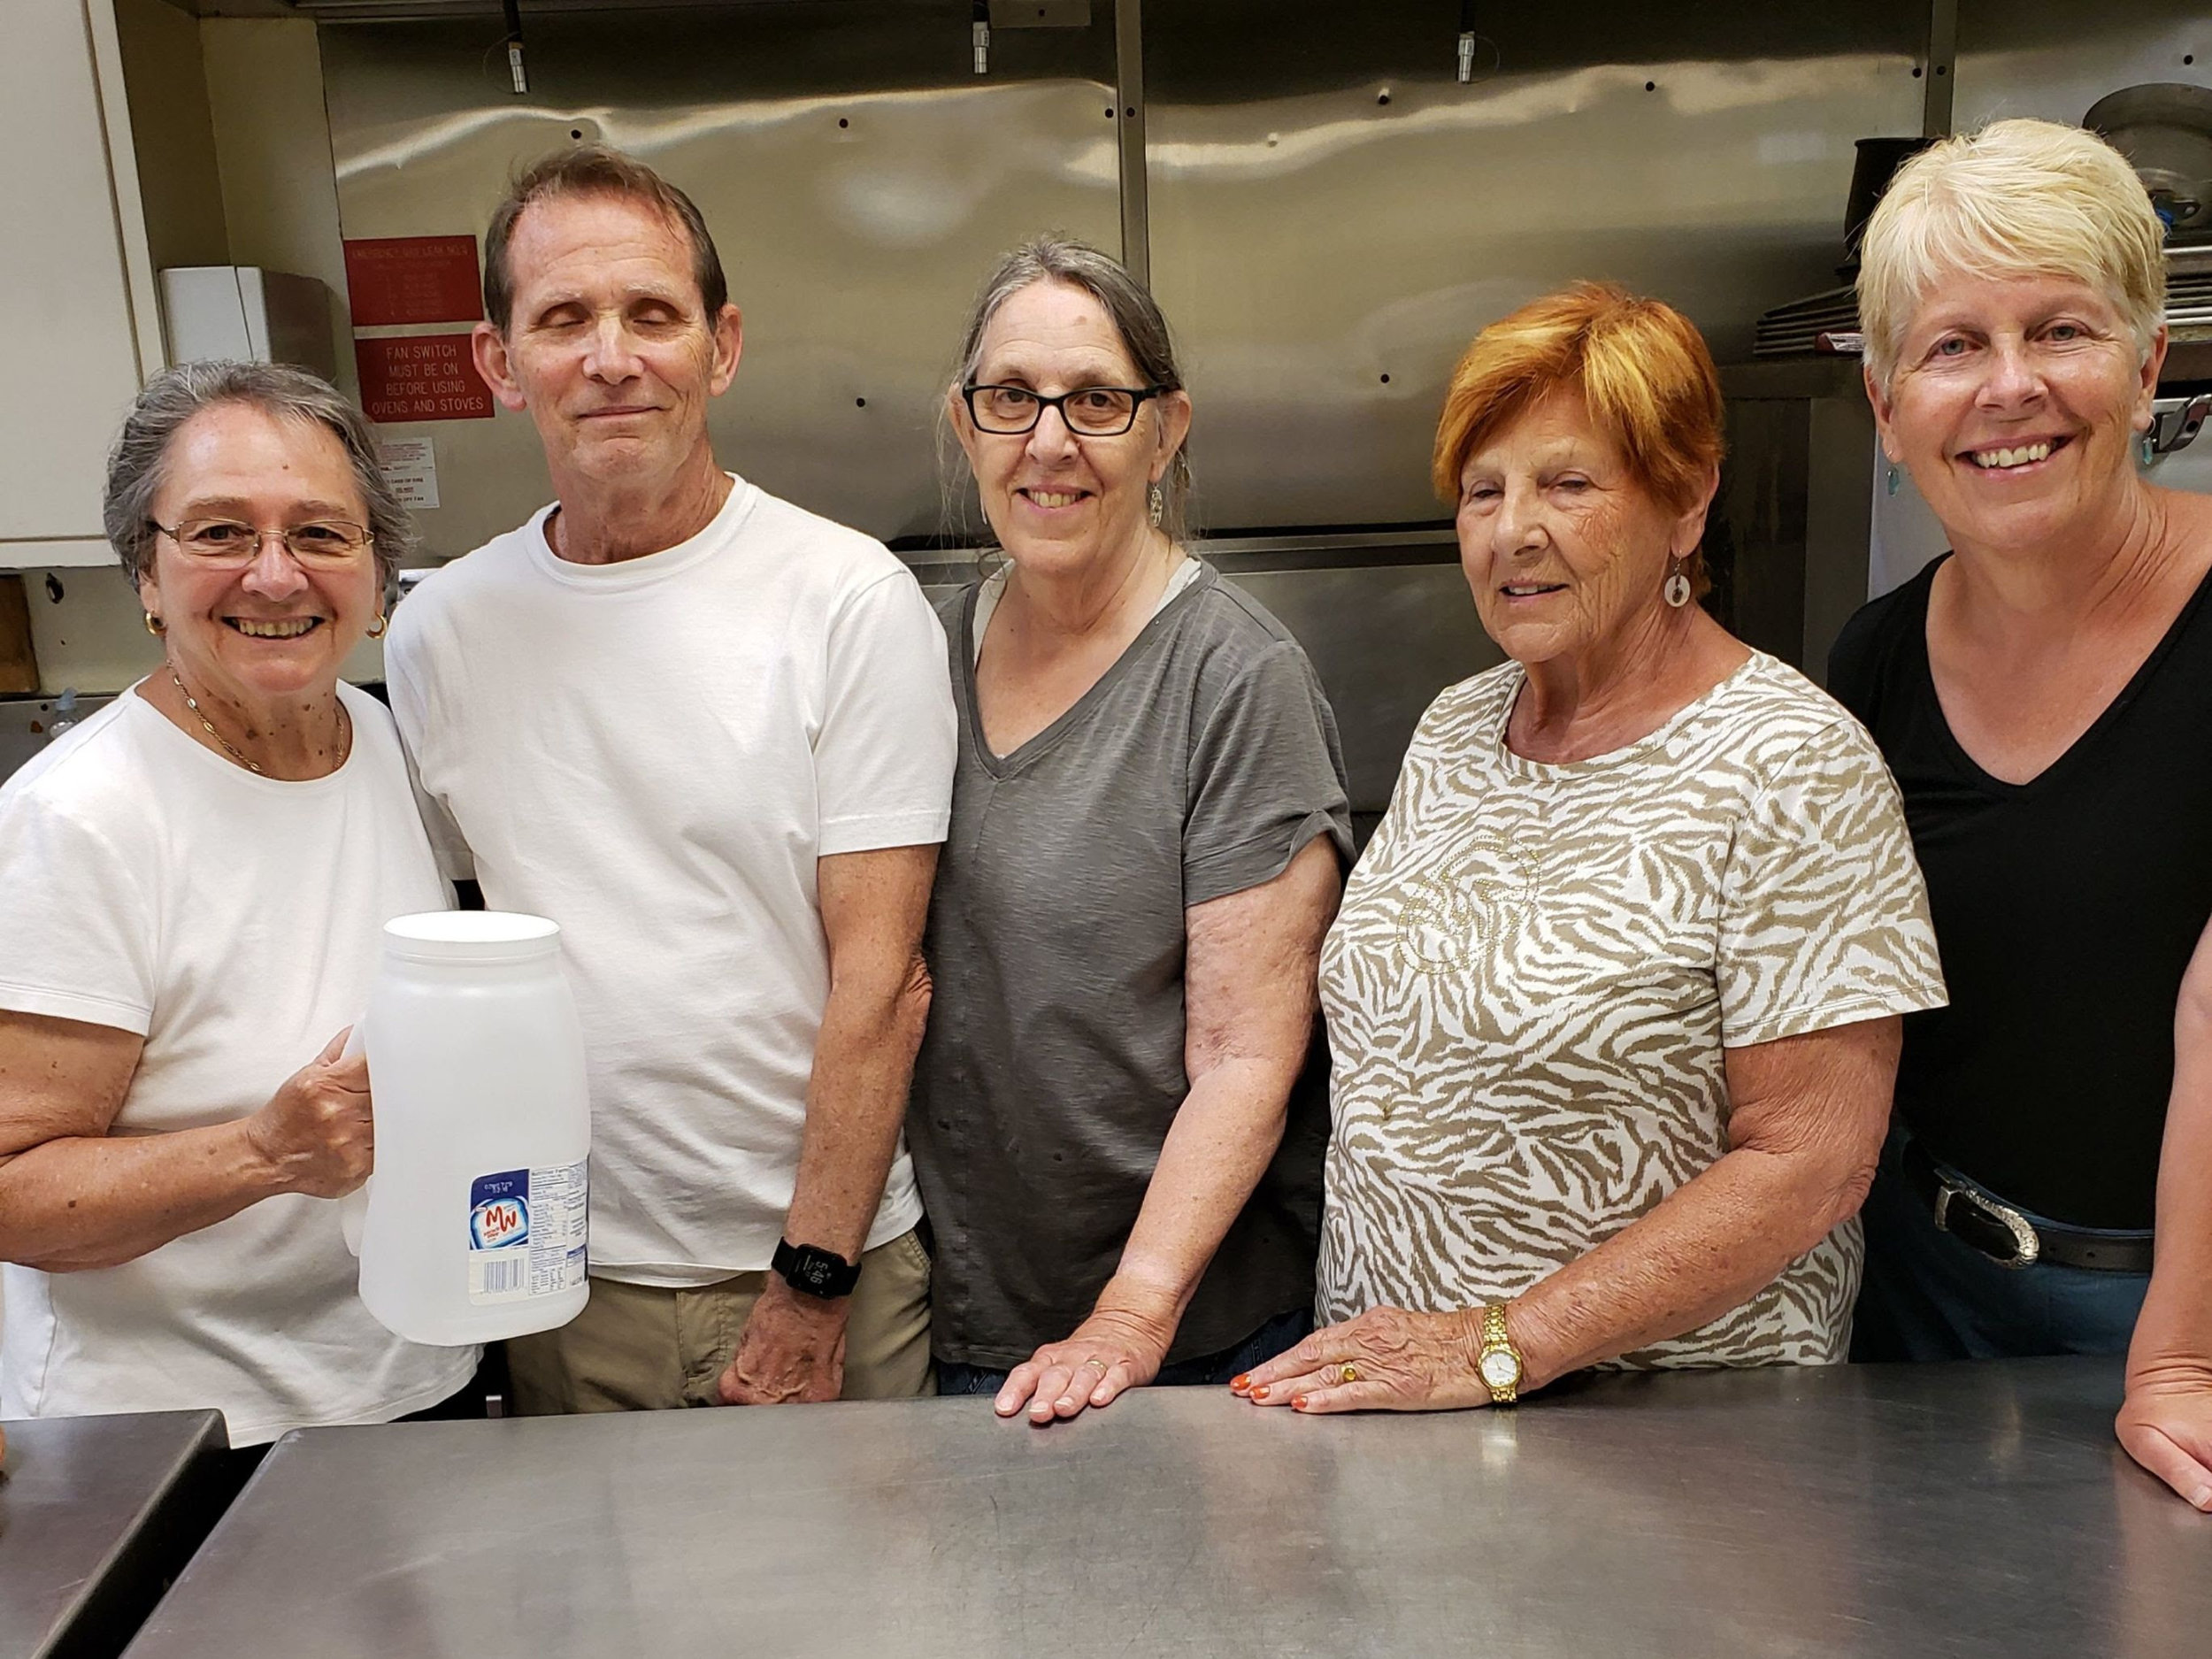 EMMANUEL DINING ROOM - Cook a warm meal and serve it those in need. For more details, contact Diane Olin White at dolinwhite@gracechurchum.org.